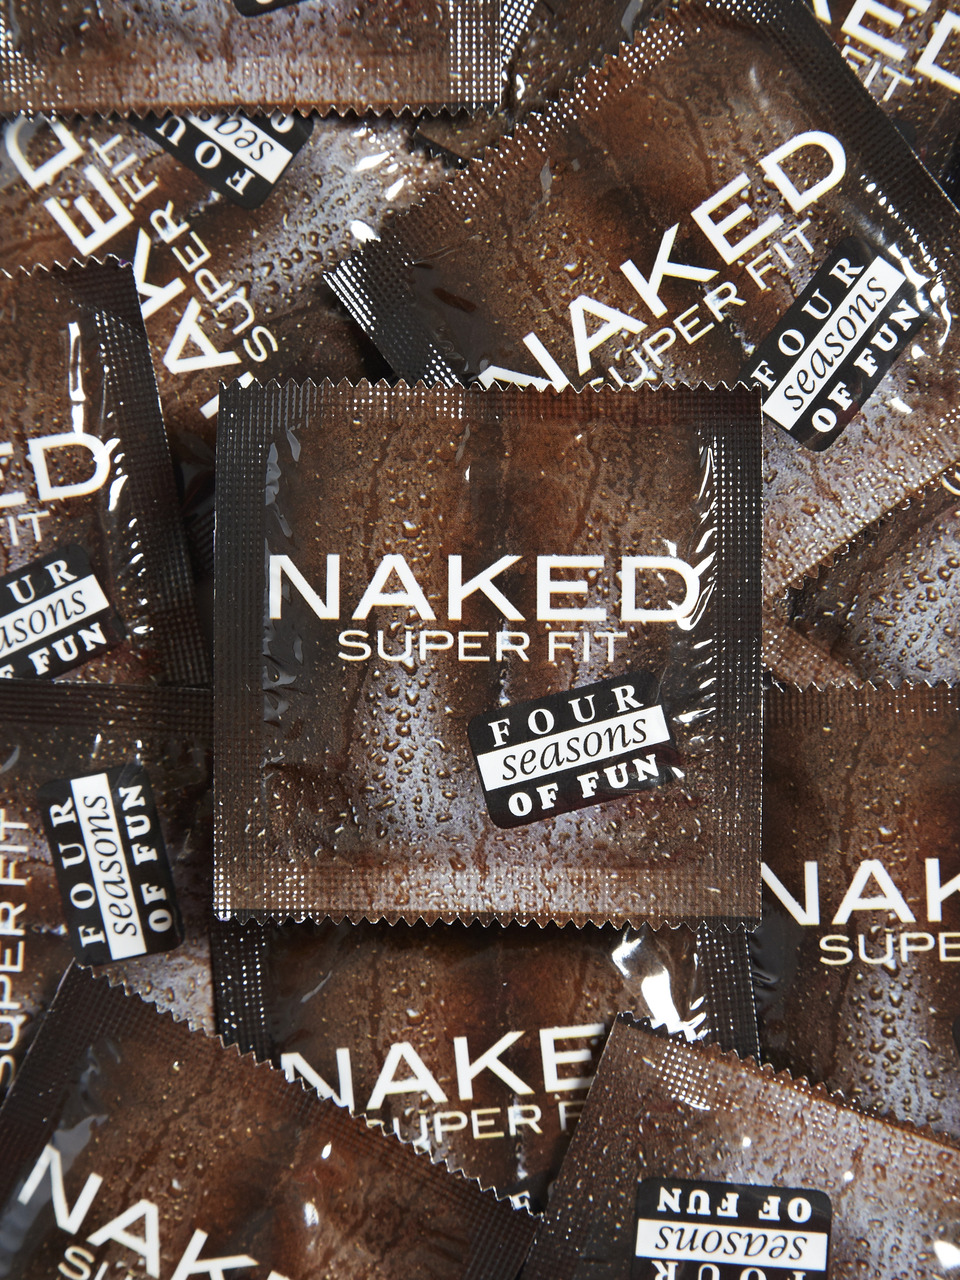 Four Seasons Naked Super Fit 56mm Condoms (24 loose packed)  - Buy Condoms Online